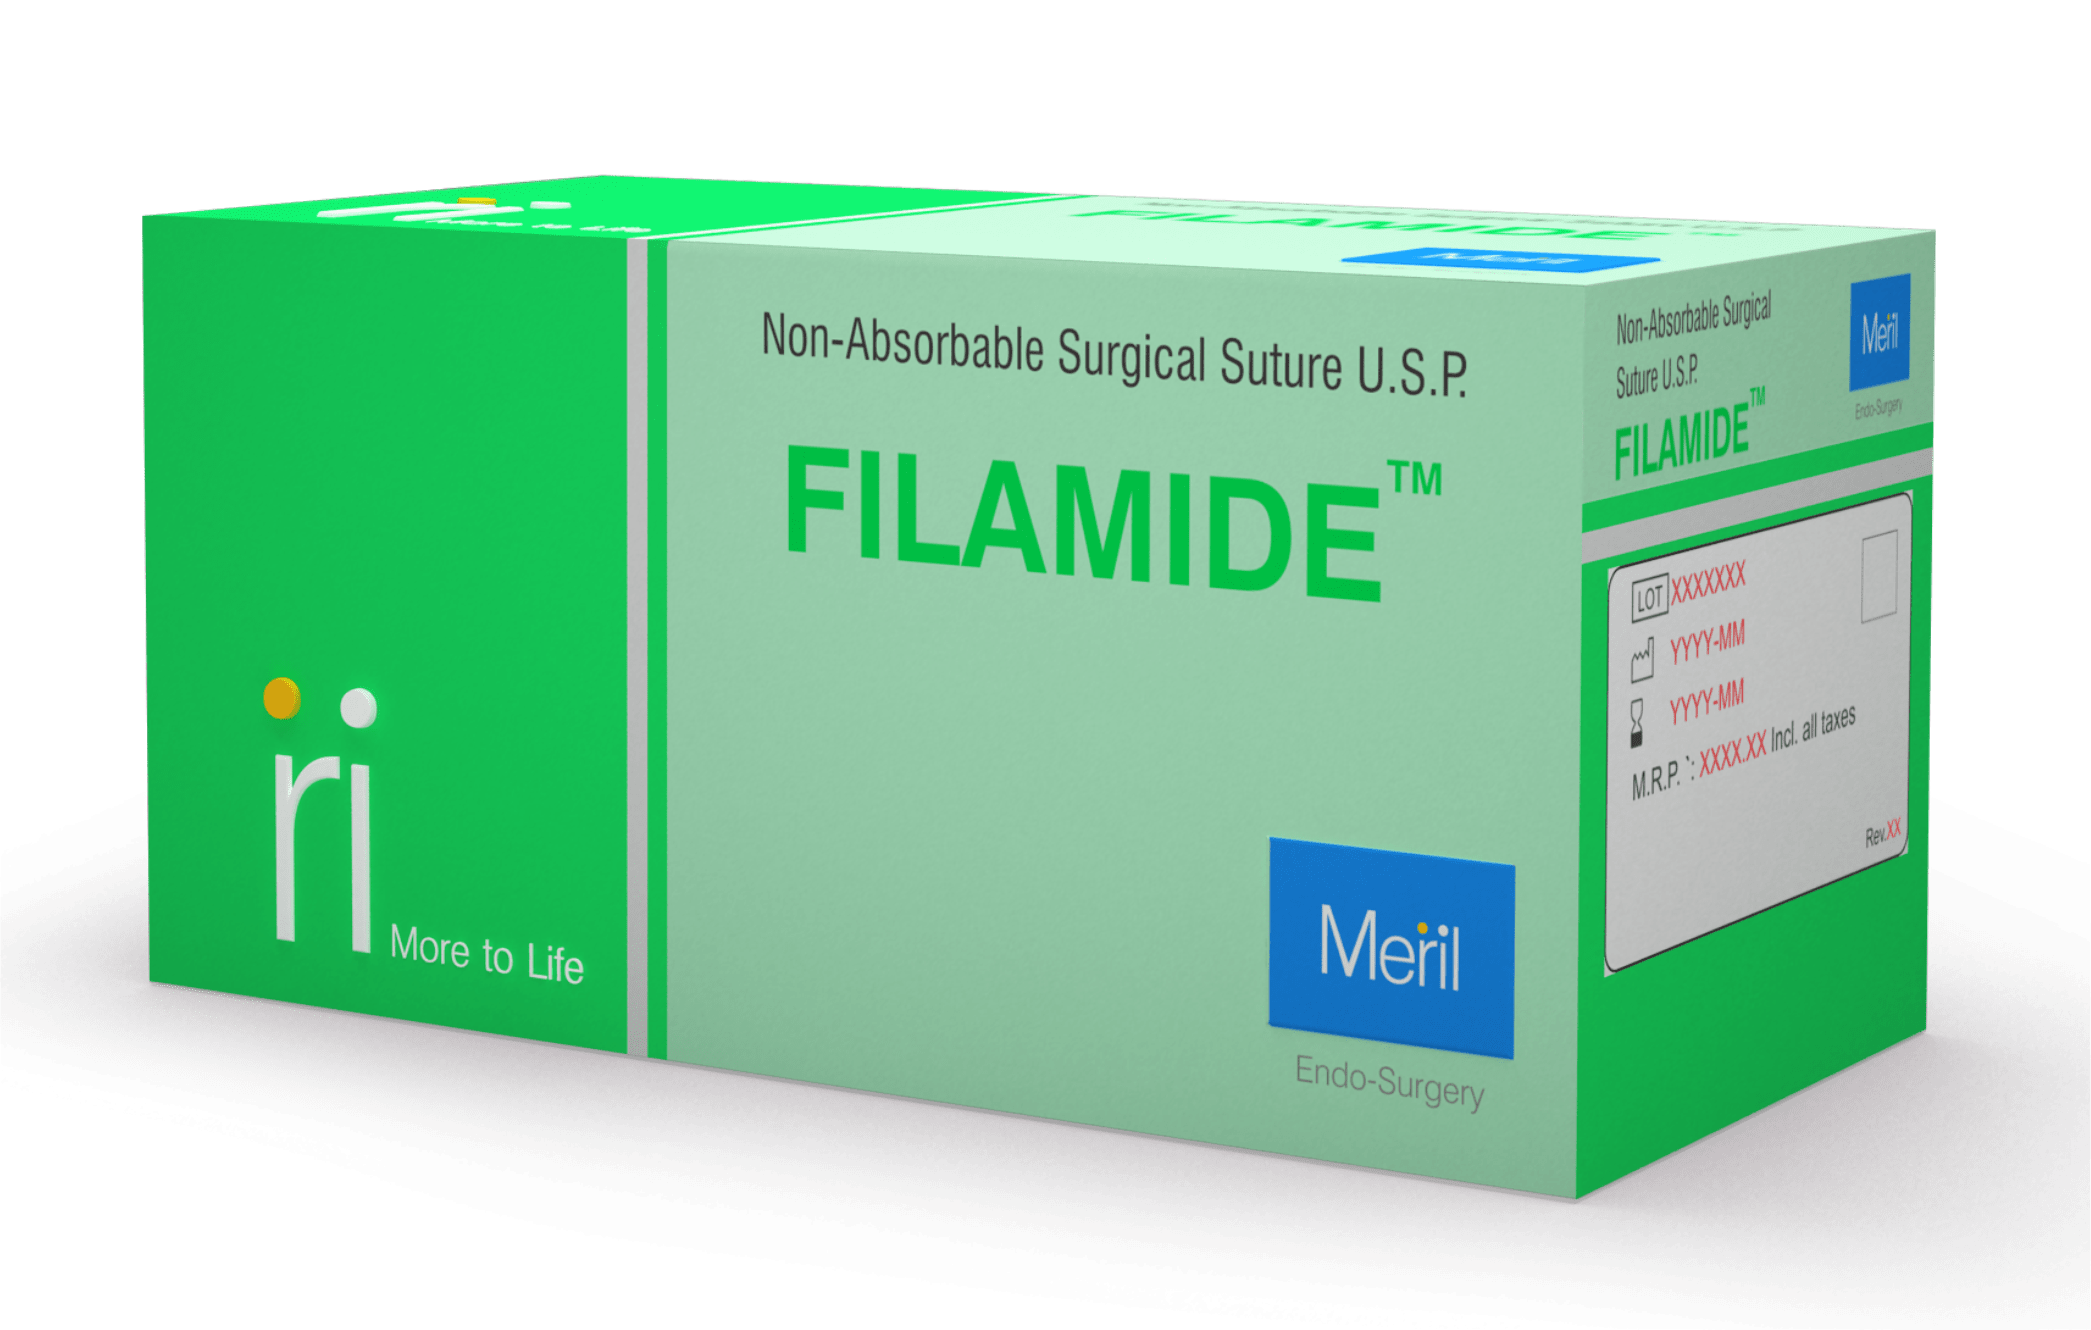 FILAMIDE - Non-Absorbable Plastic Surgical Suture